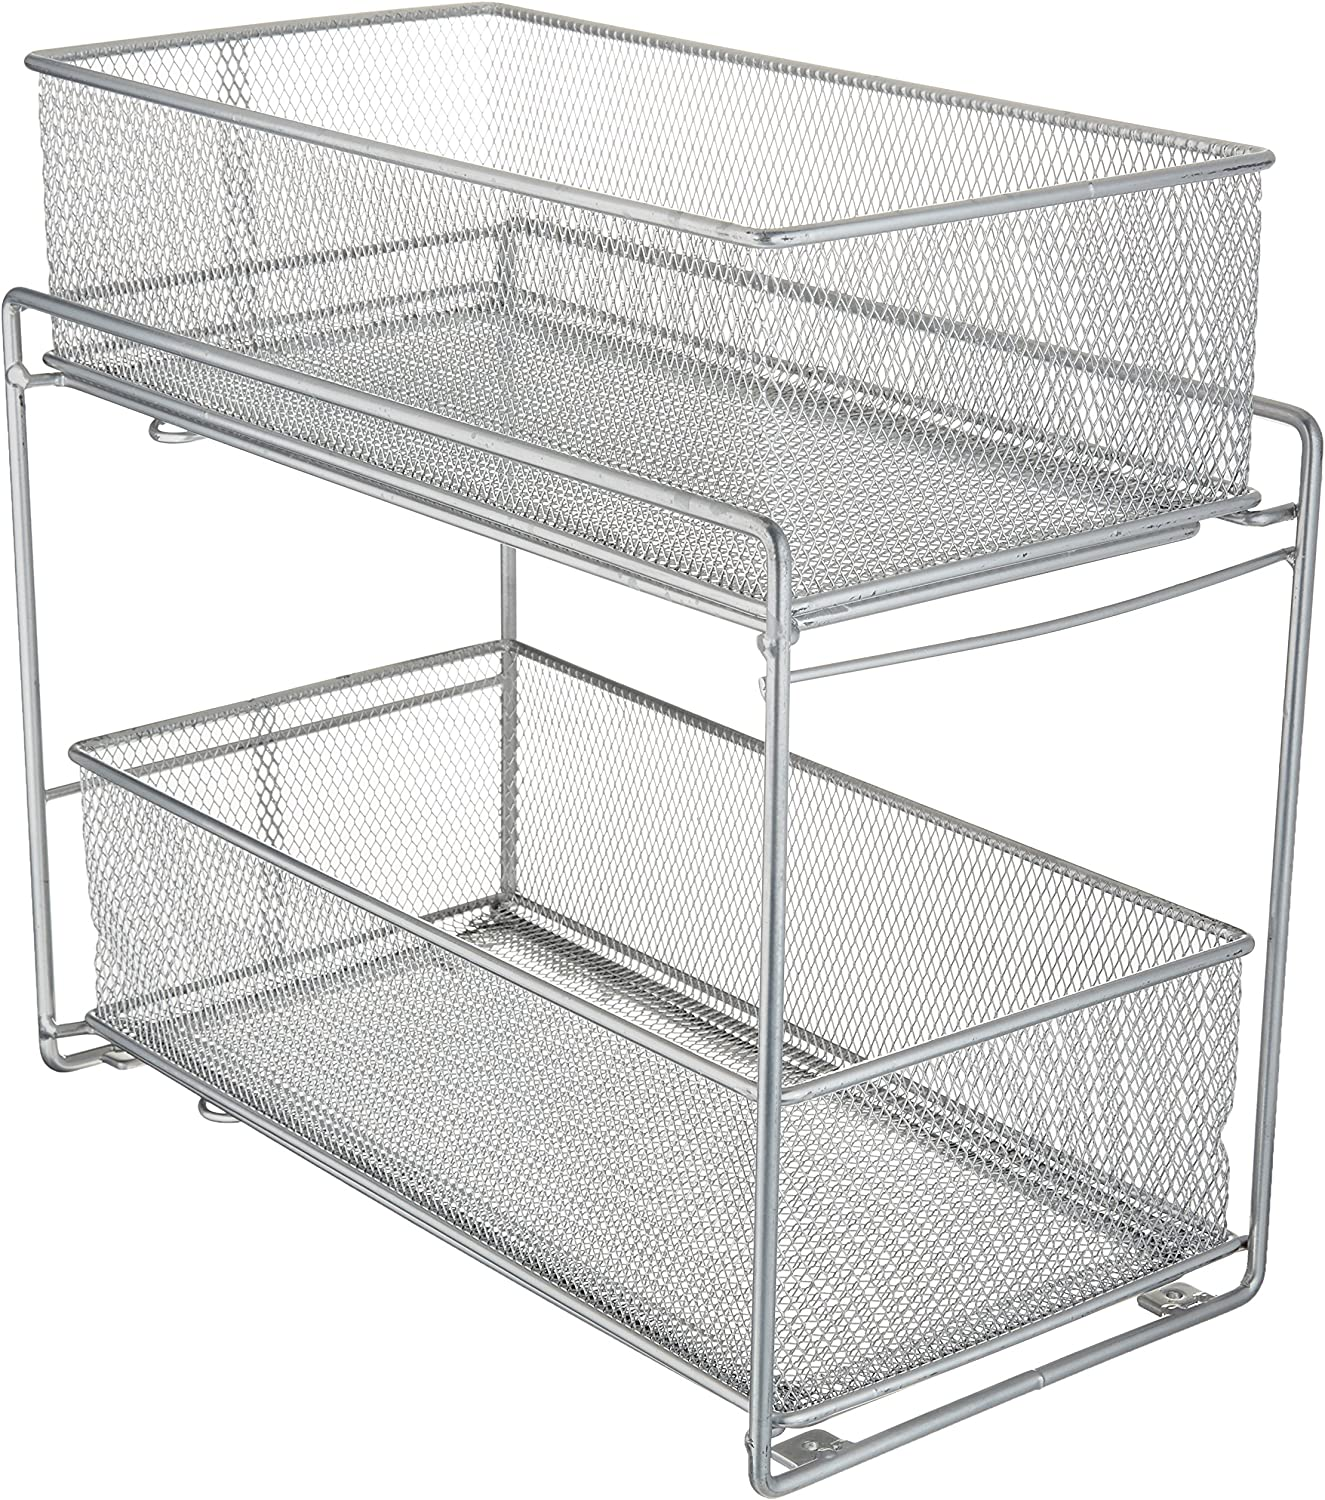 ORG 2-Tier Mesh Steel Mesh Double Sliding Cabinet Basket in Silver (1, Silver)